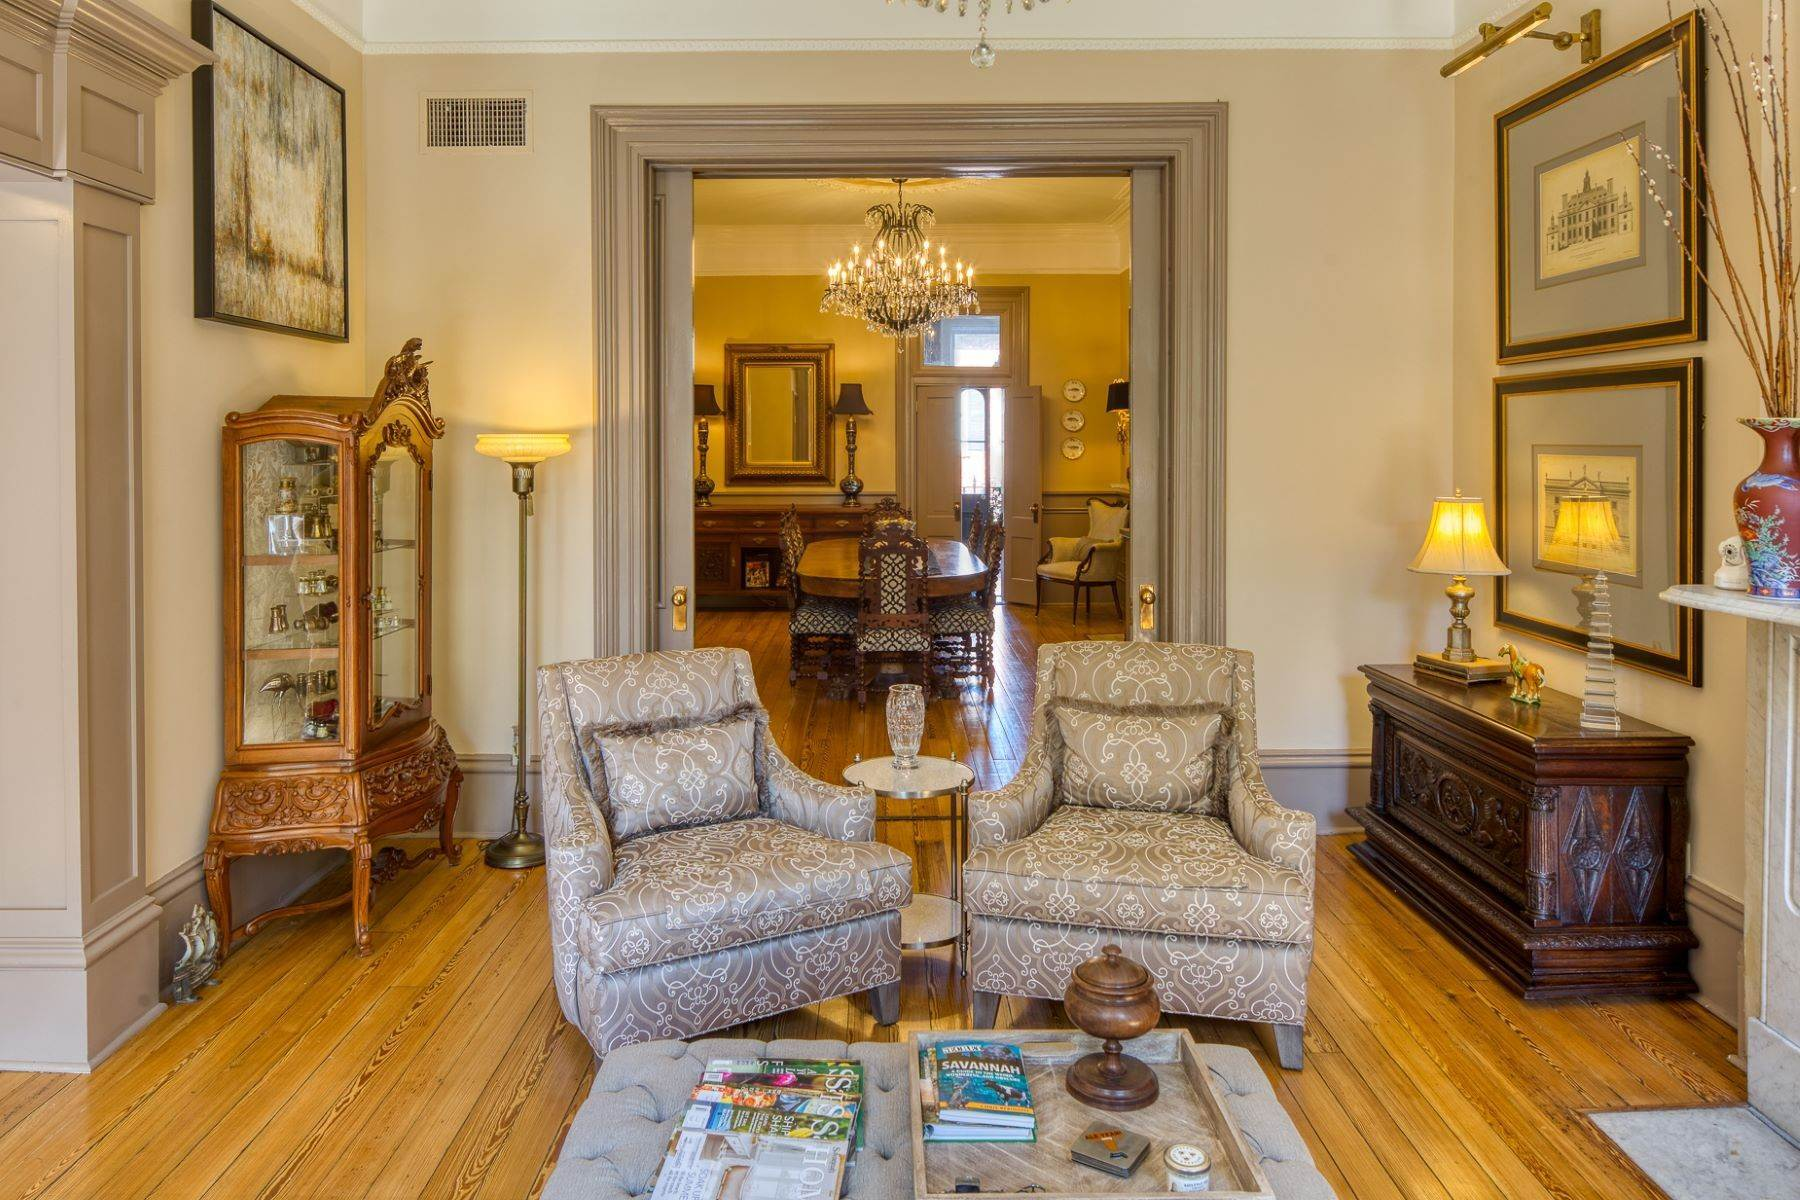 7. Single Family Homes for Sale at Architectural Gem Located In The Heart Of Savannah's Landmark Historic District 206 E Gaston Street Savannah, Georgia 31401 United States